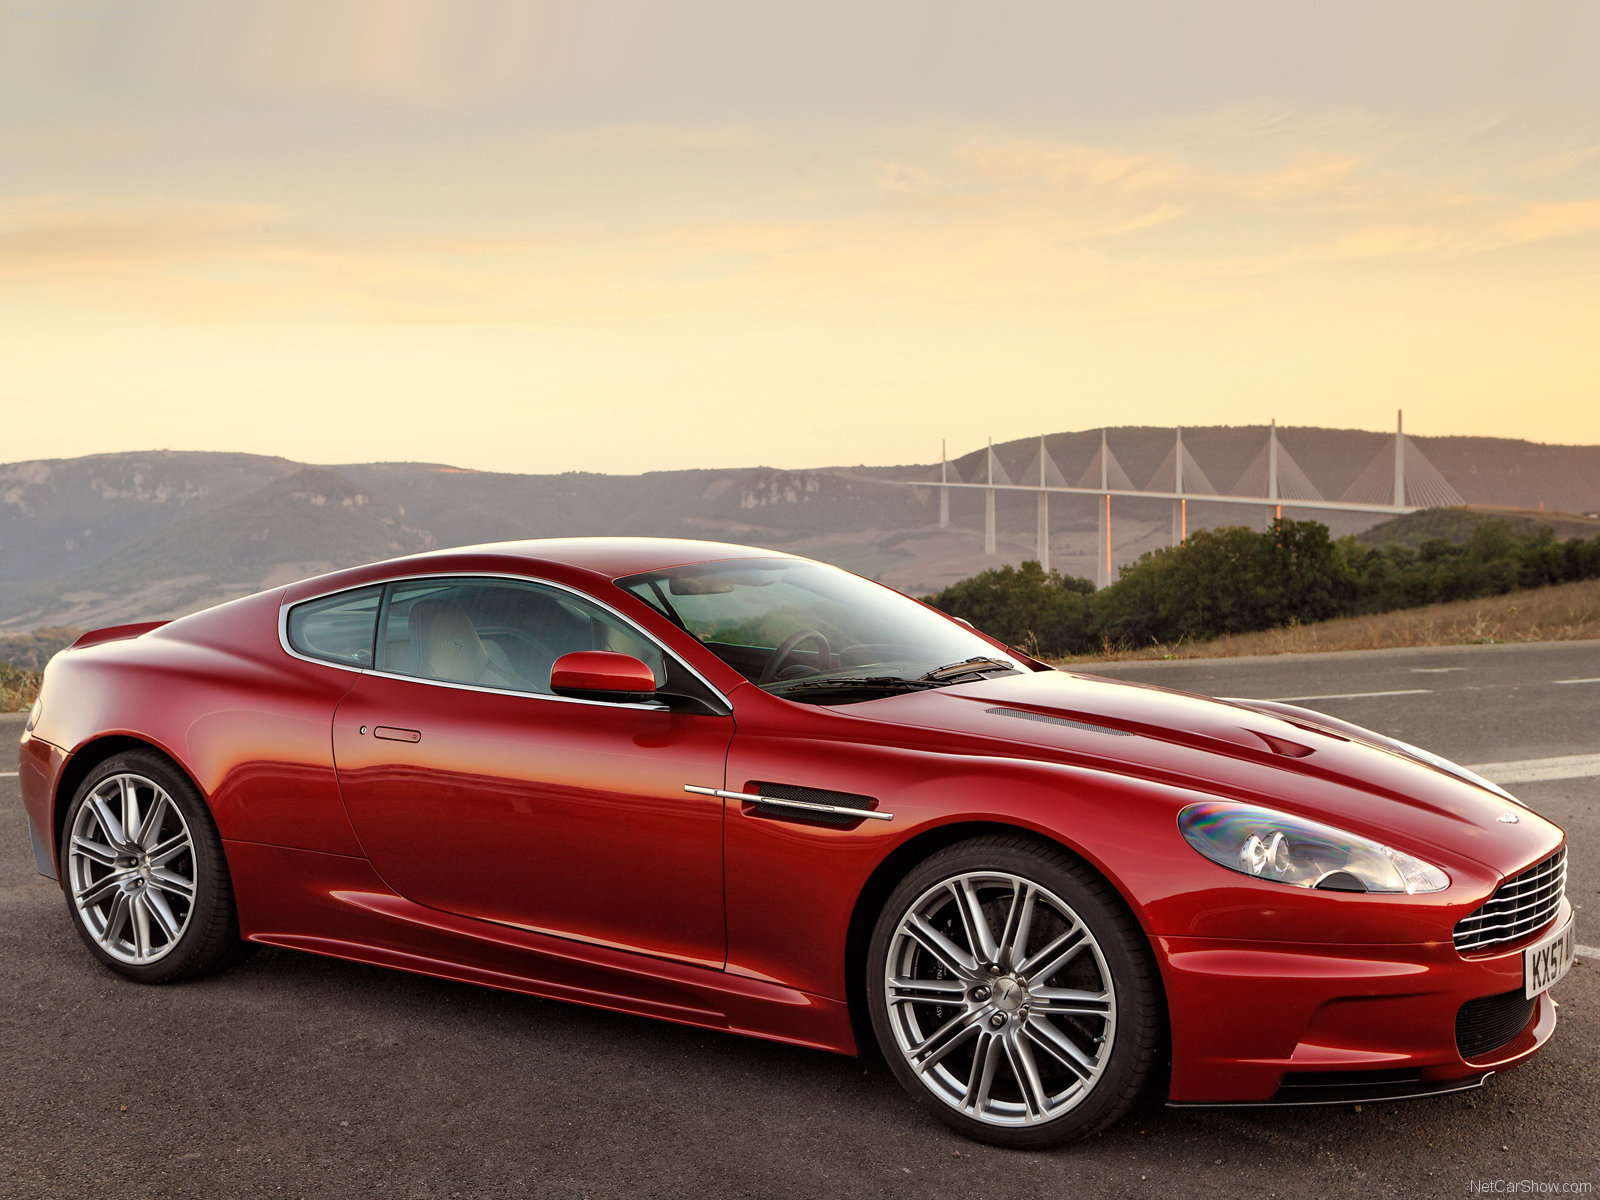 Aston Martin DBS Infa Red picture